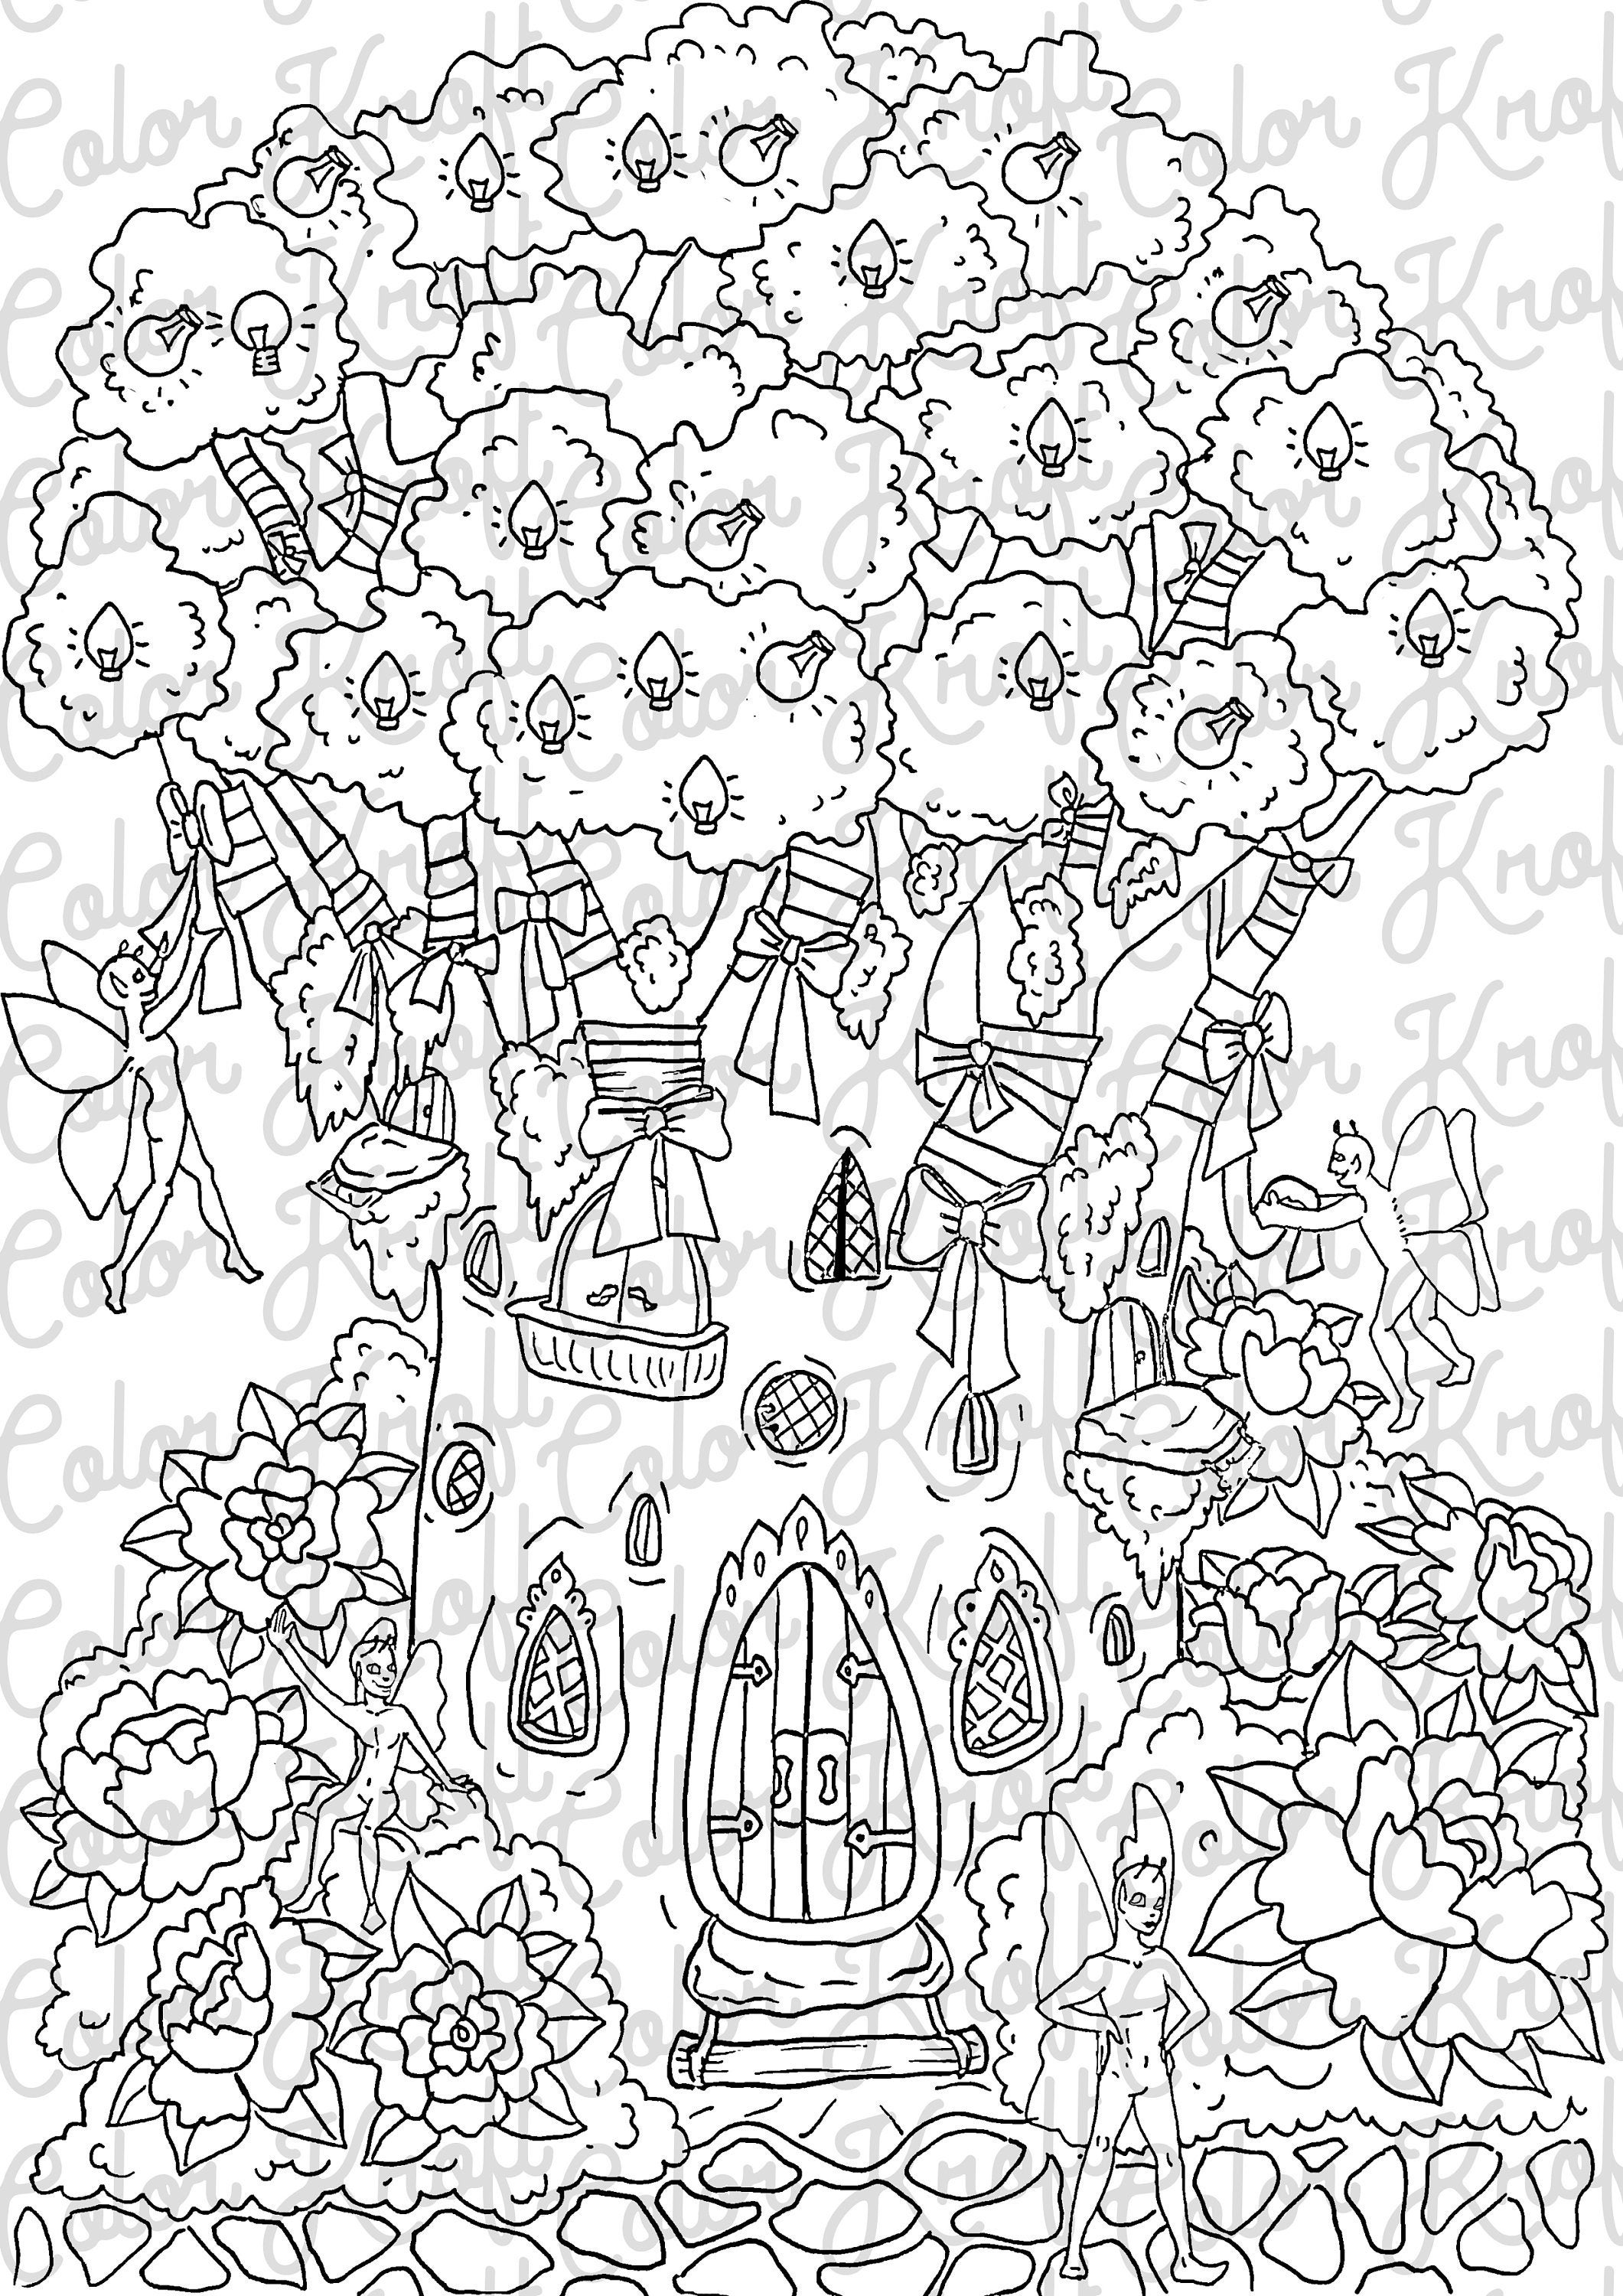 Fairy Garden Coloring Page // Fairy Tree Decorating Printable Coloring //  Digital Download Coloring Page